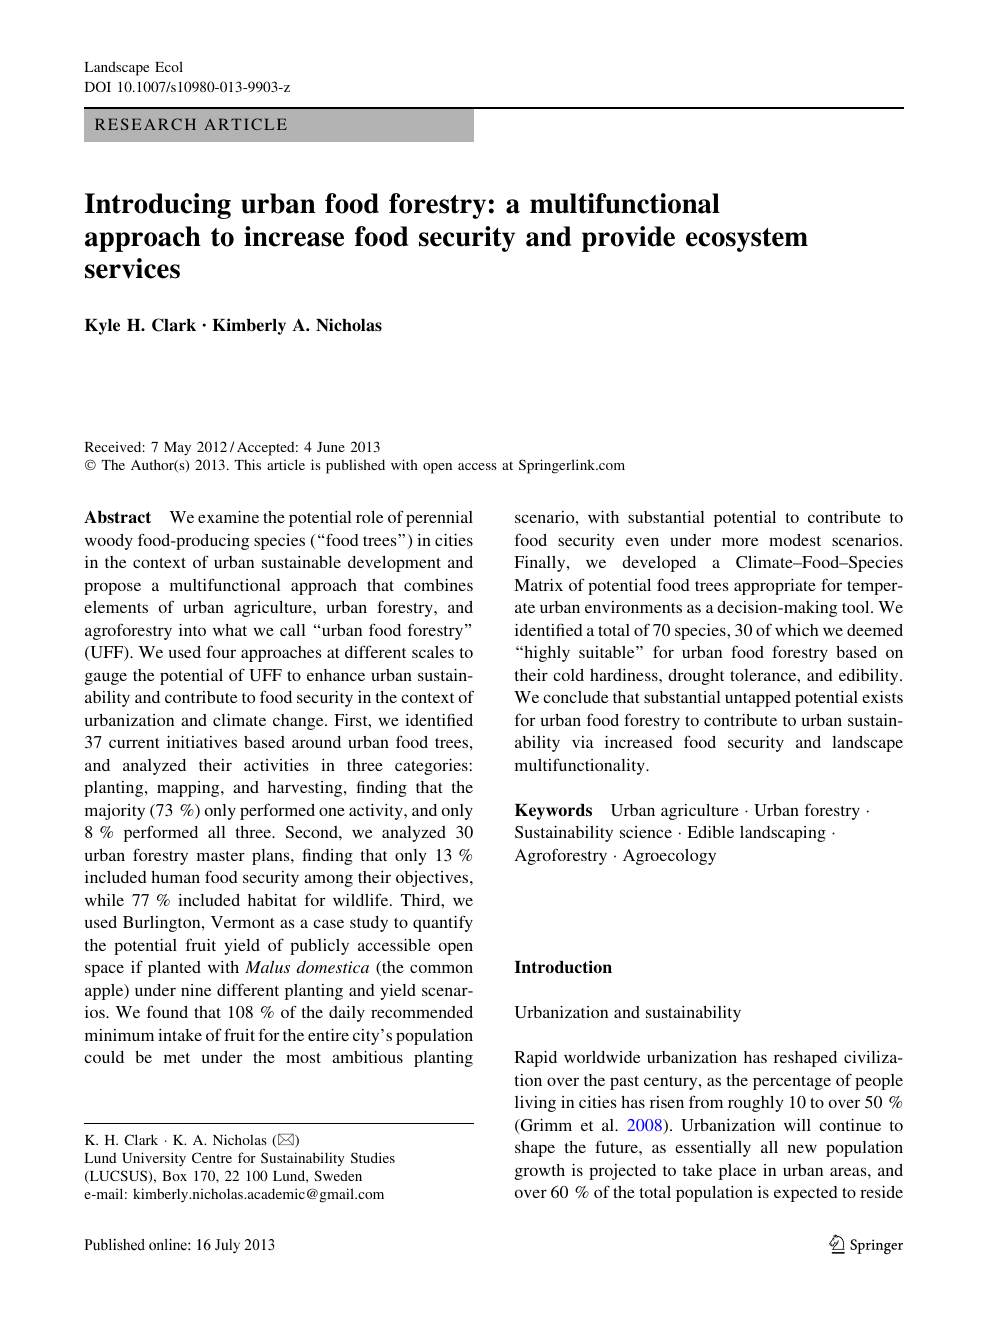 Introducing urban food forestry: a multifunctional approach